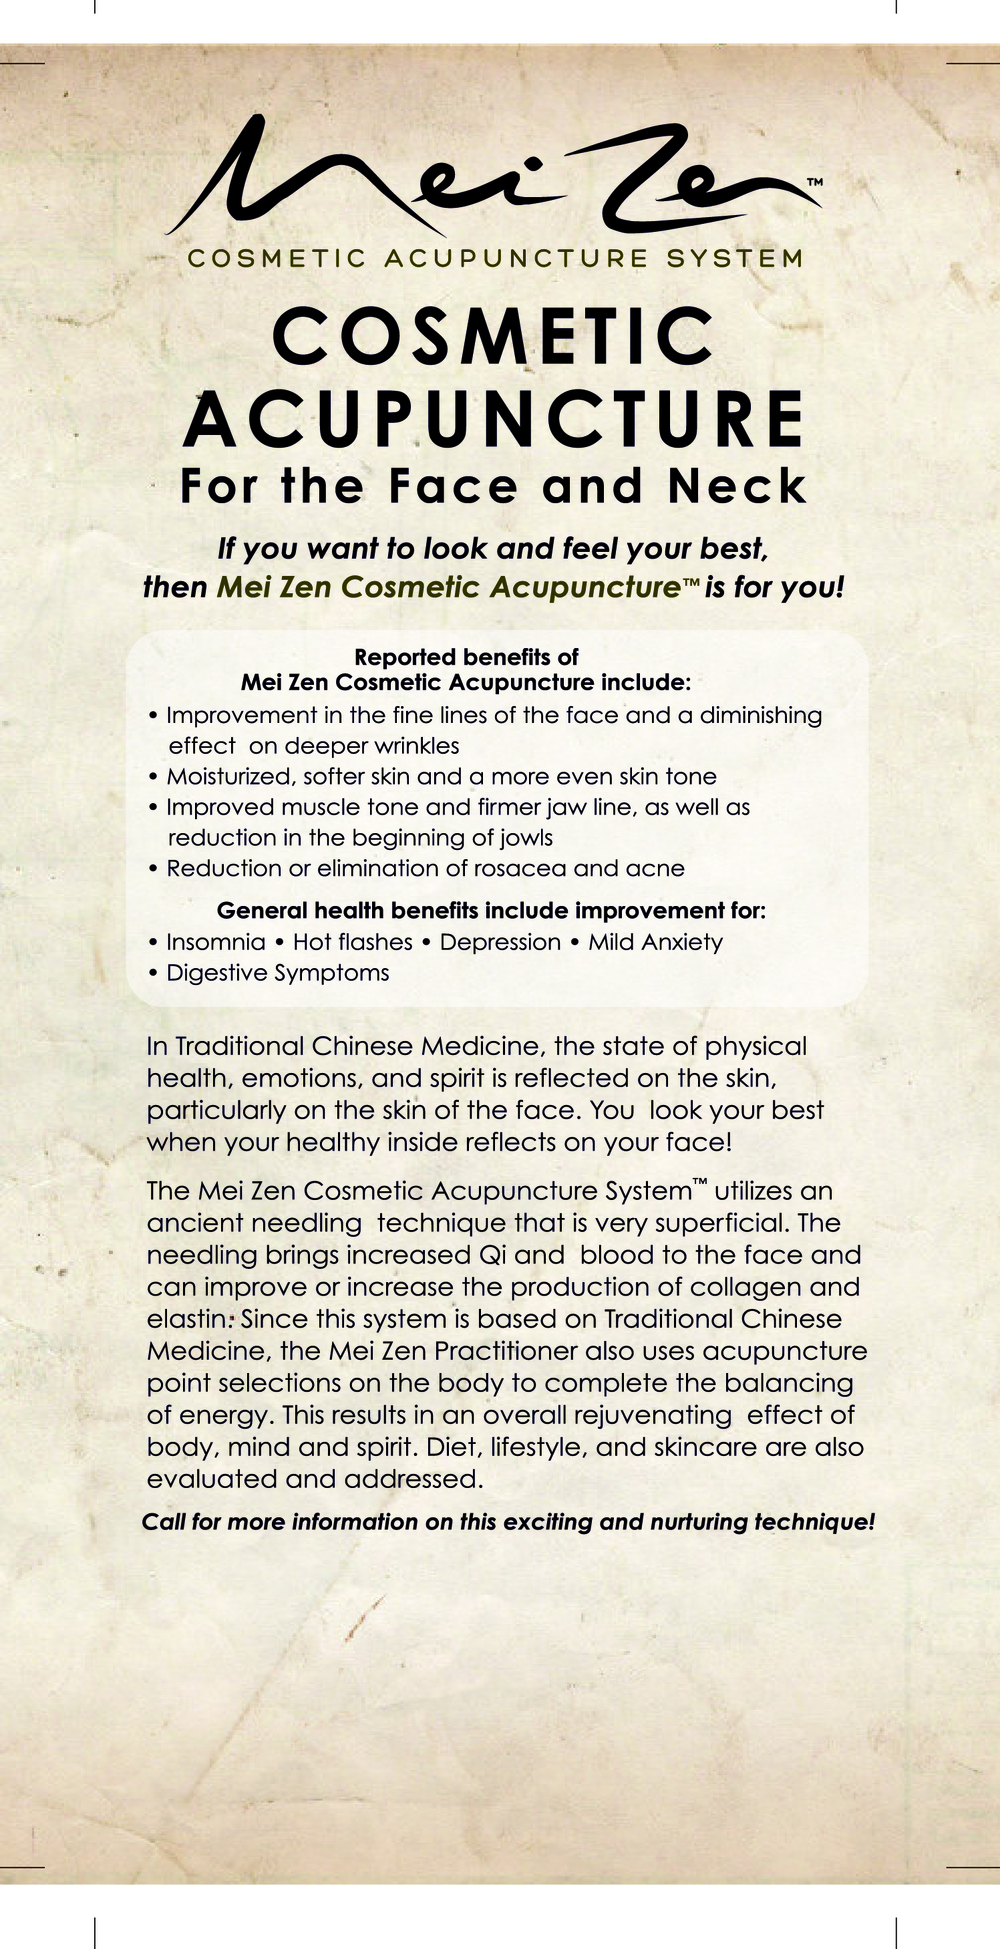 song acupower mei zen facial rejuvenation acupuncture.jpg